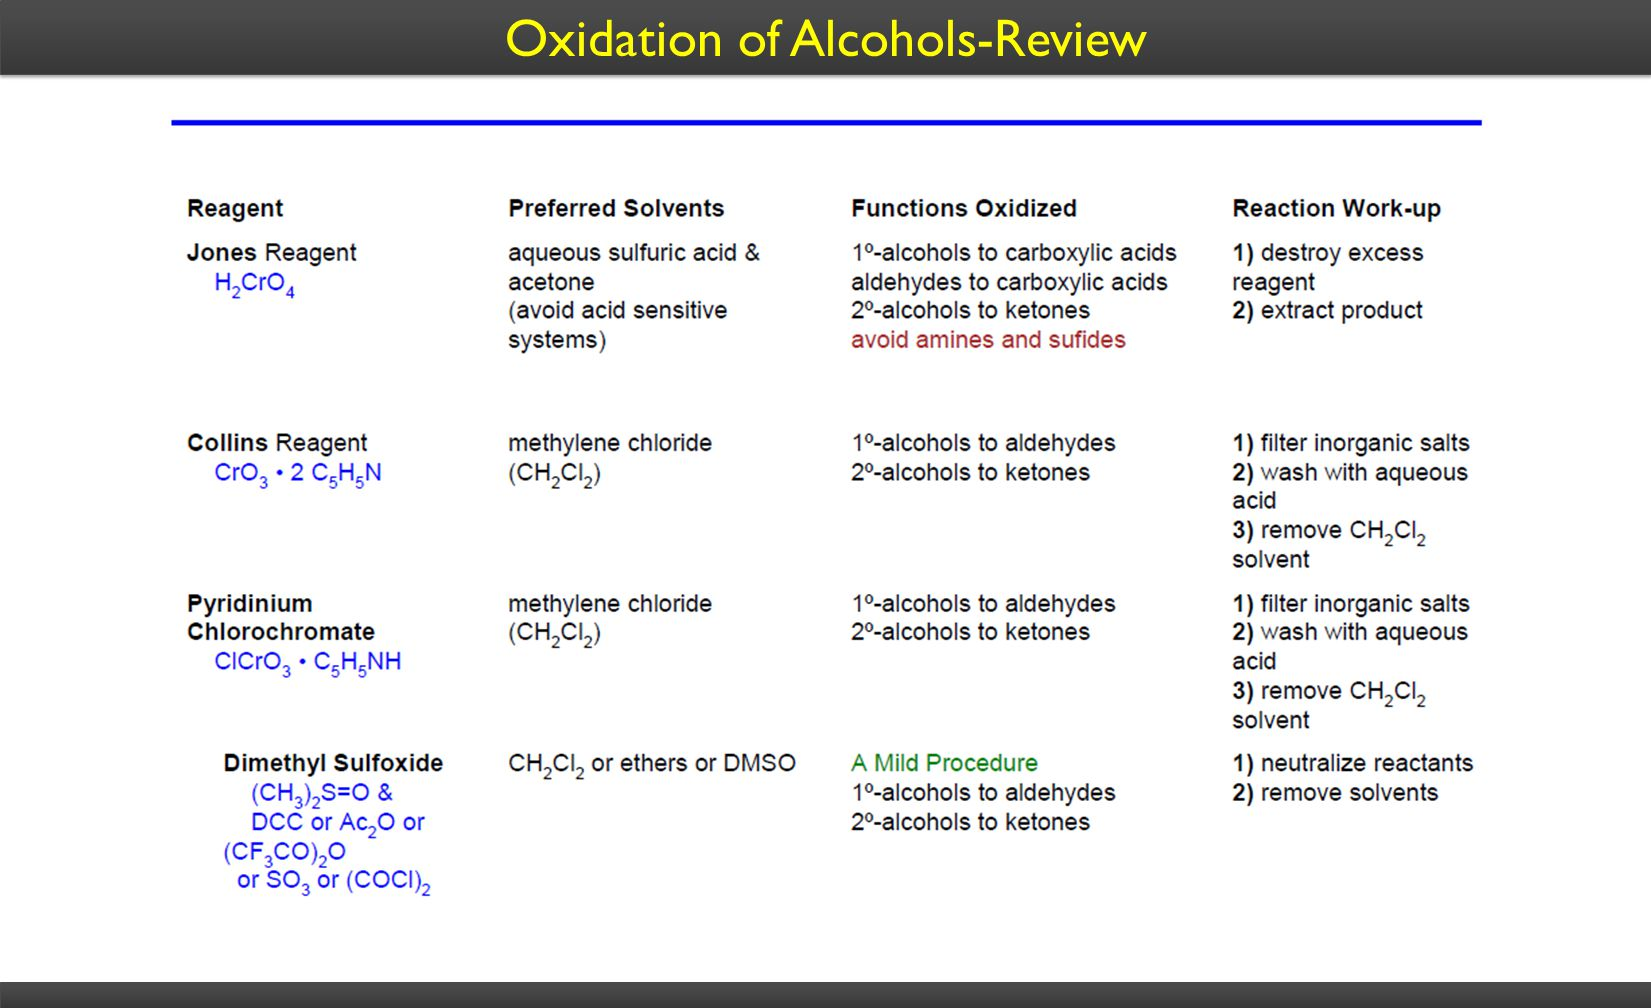 Oxidation of Alcohols-Review